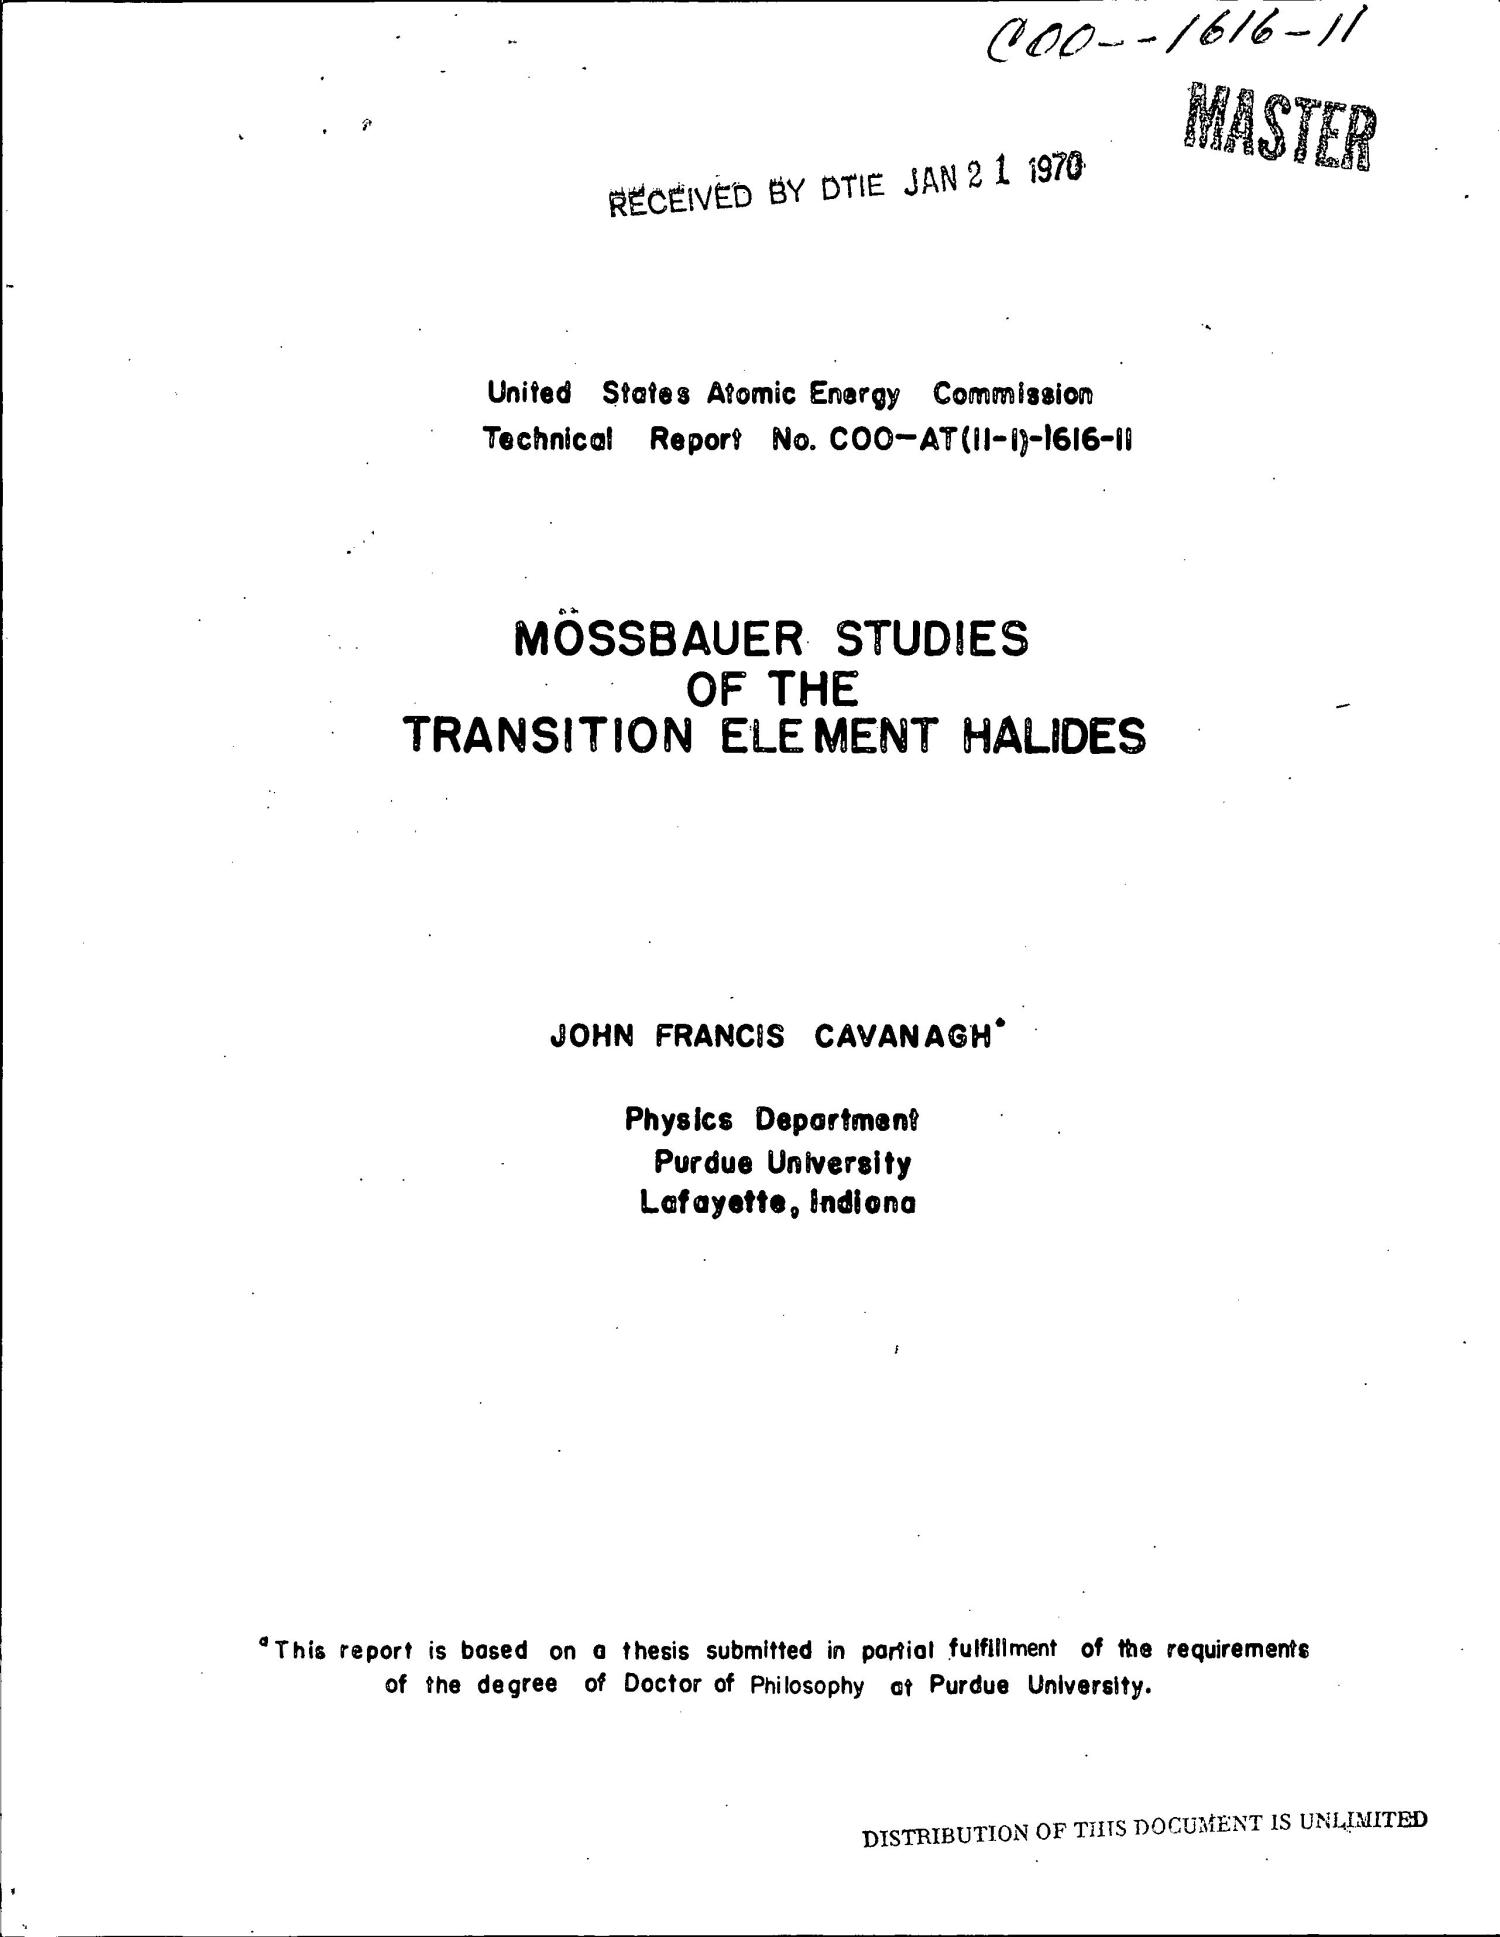 MOESSBAUER STUDIES OF THE TRANSITION ELEMENT HALIDES.                                                                                                      [Sequence #]: 1 of 112